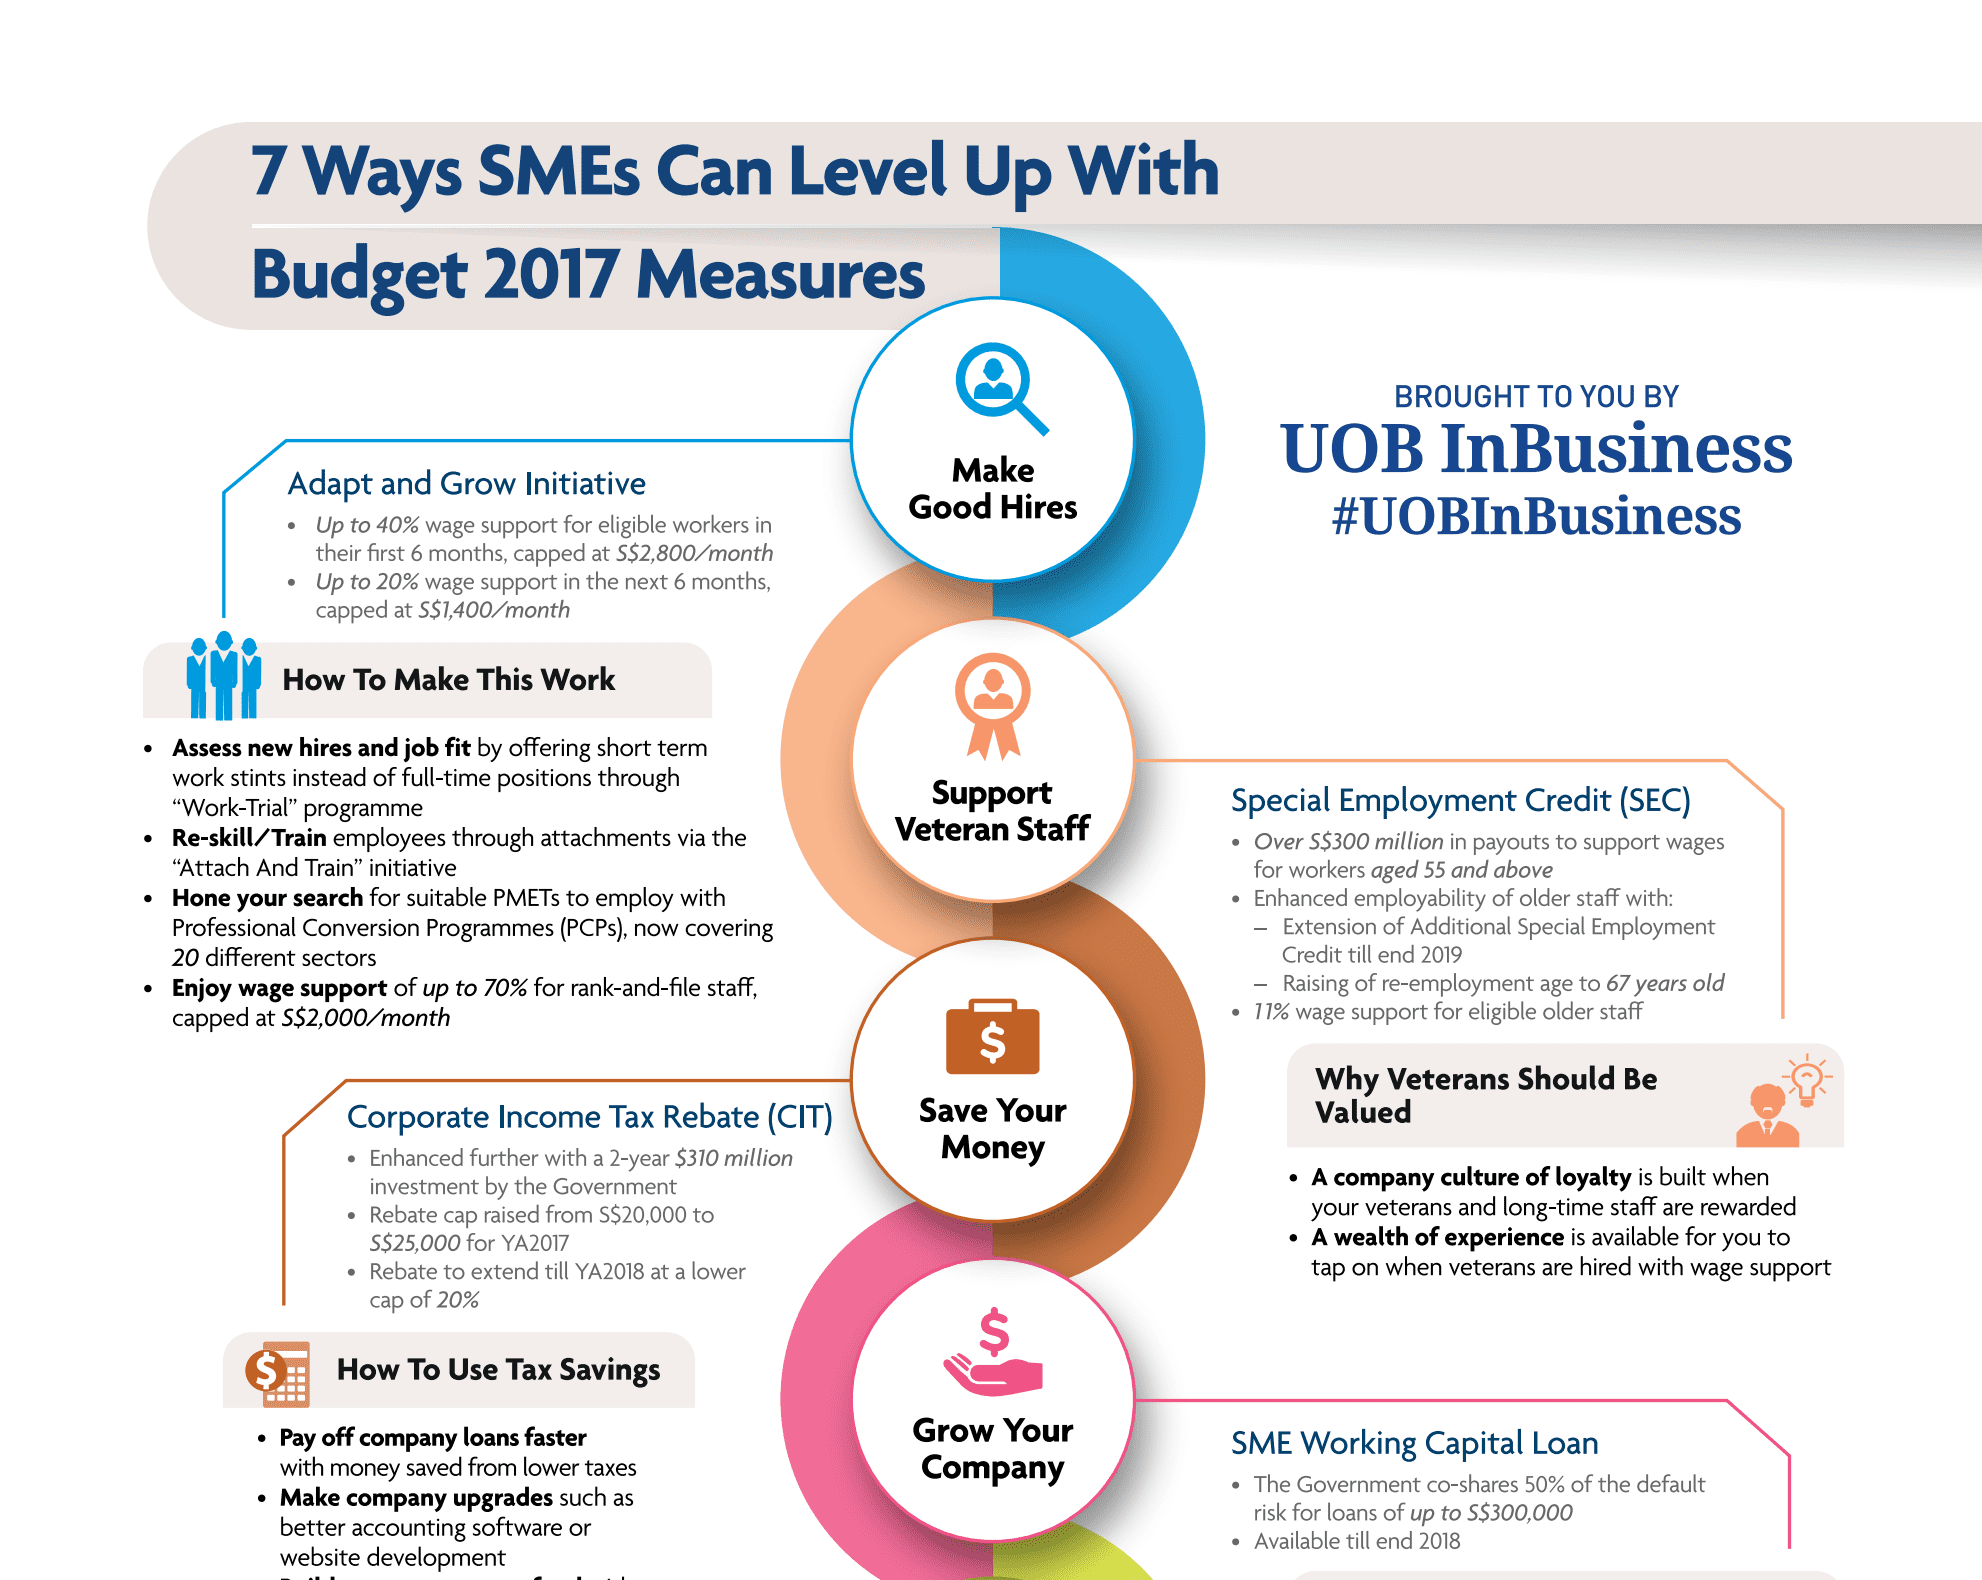 7 Ways SMEs can Level Up with Budget 2017 Measures